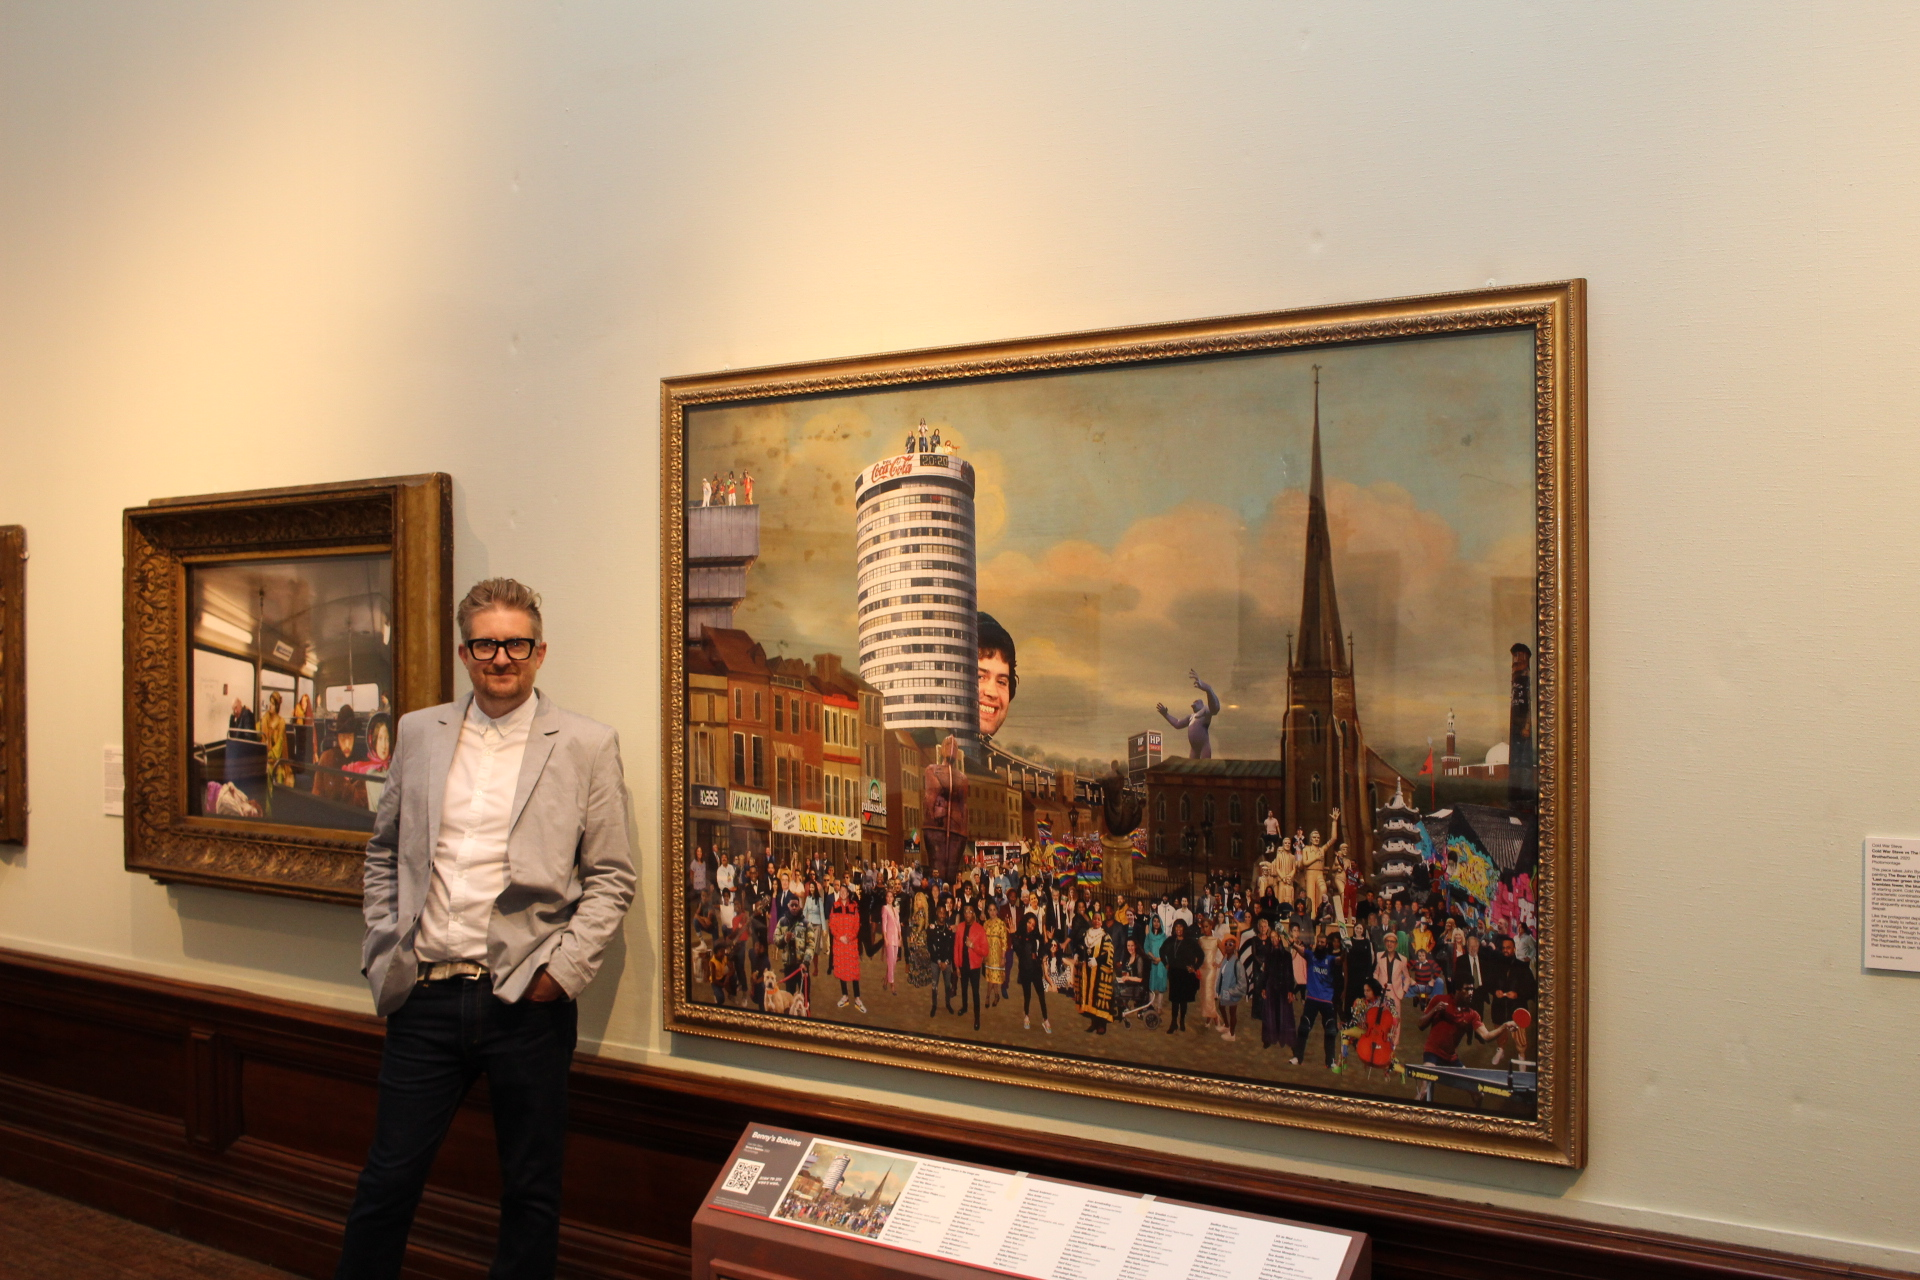 Birmingham Museum & Art Gallery Reopens With New Displays